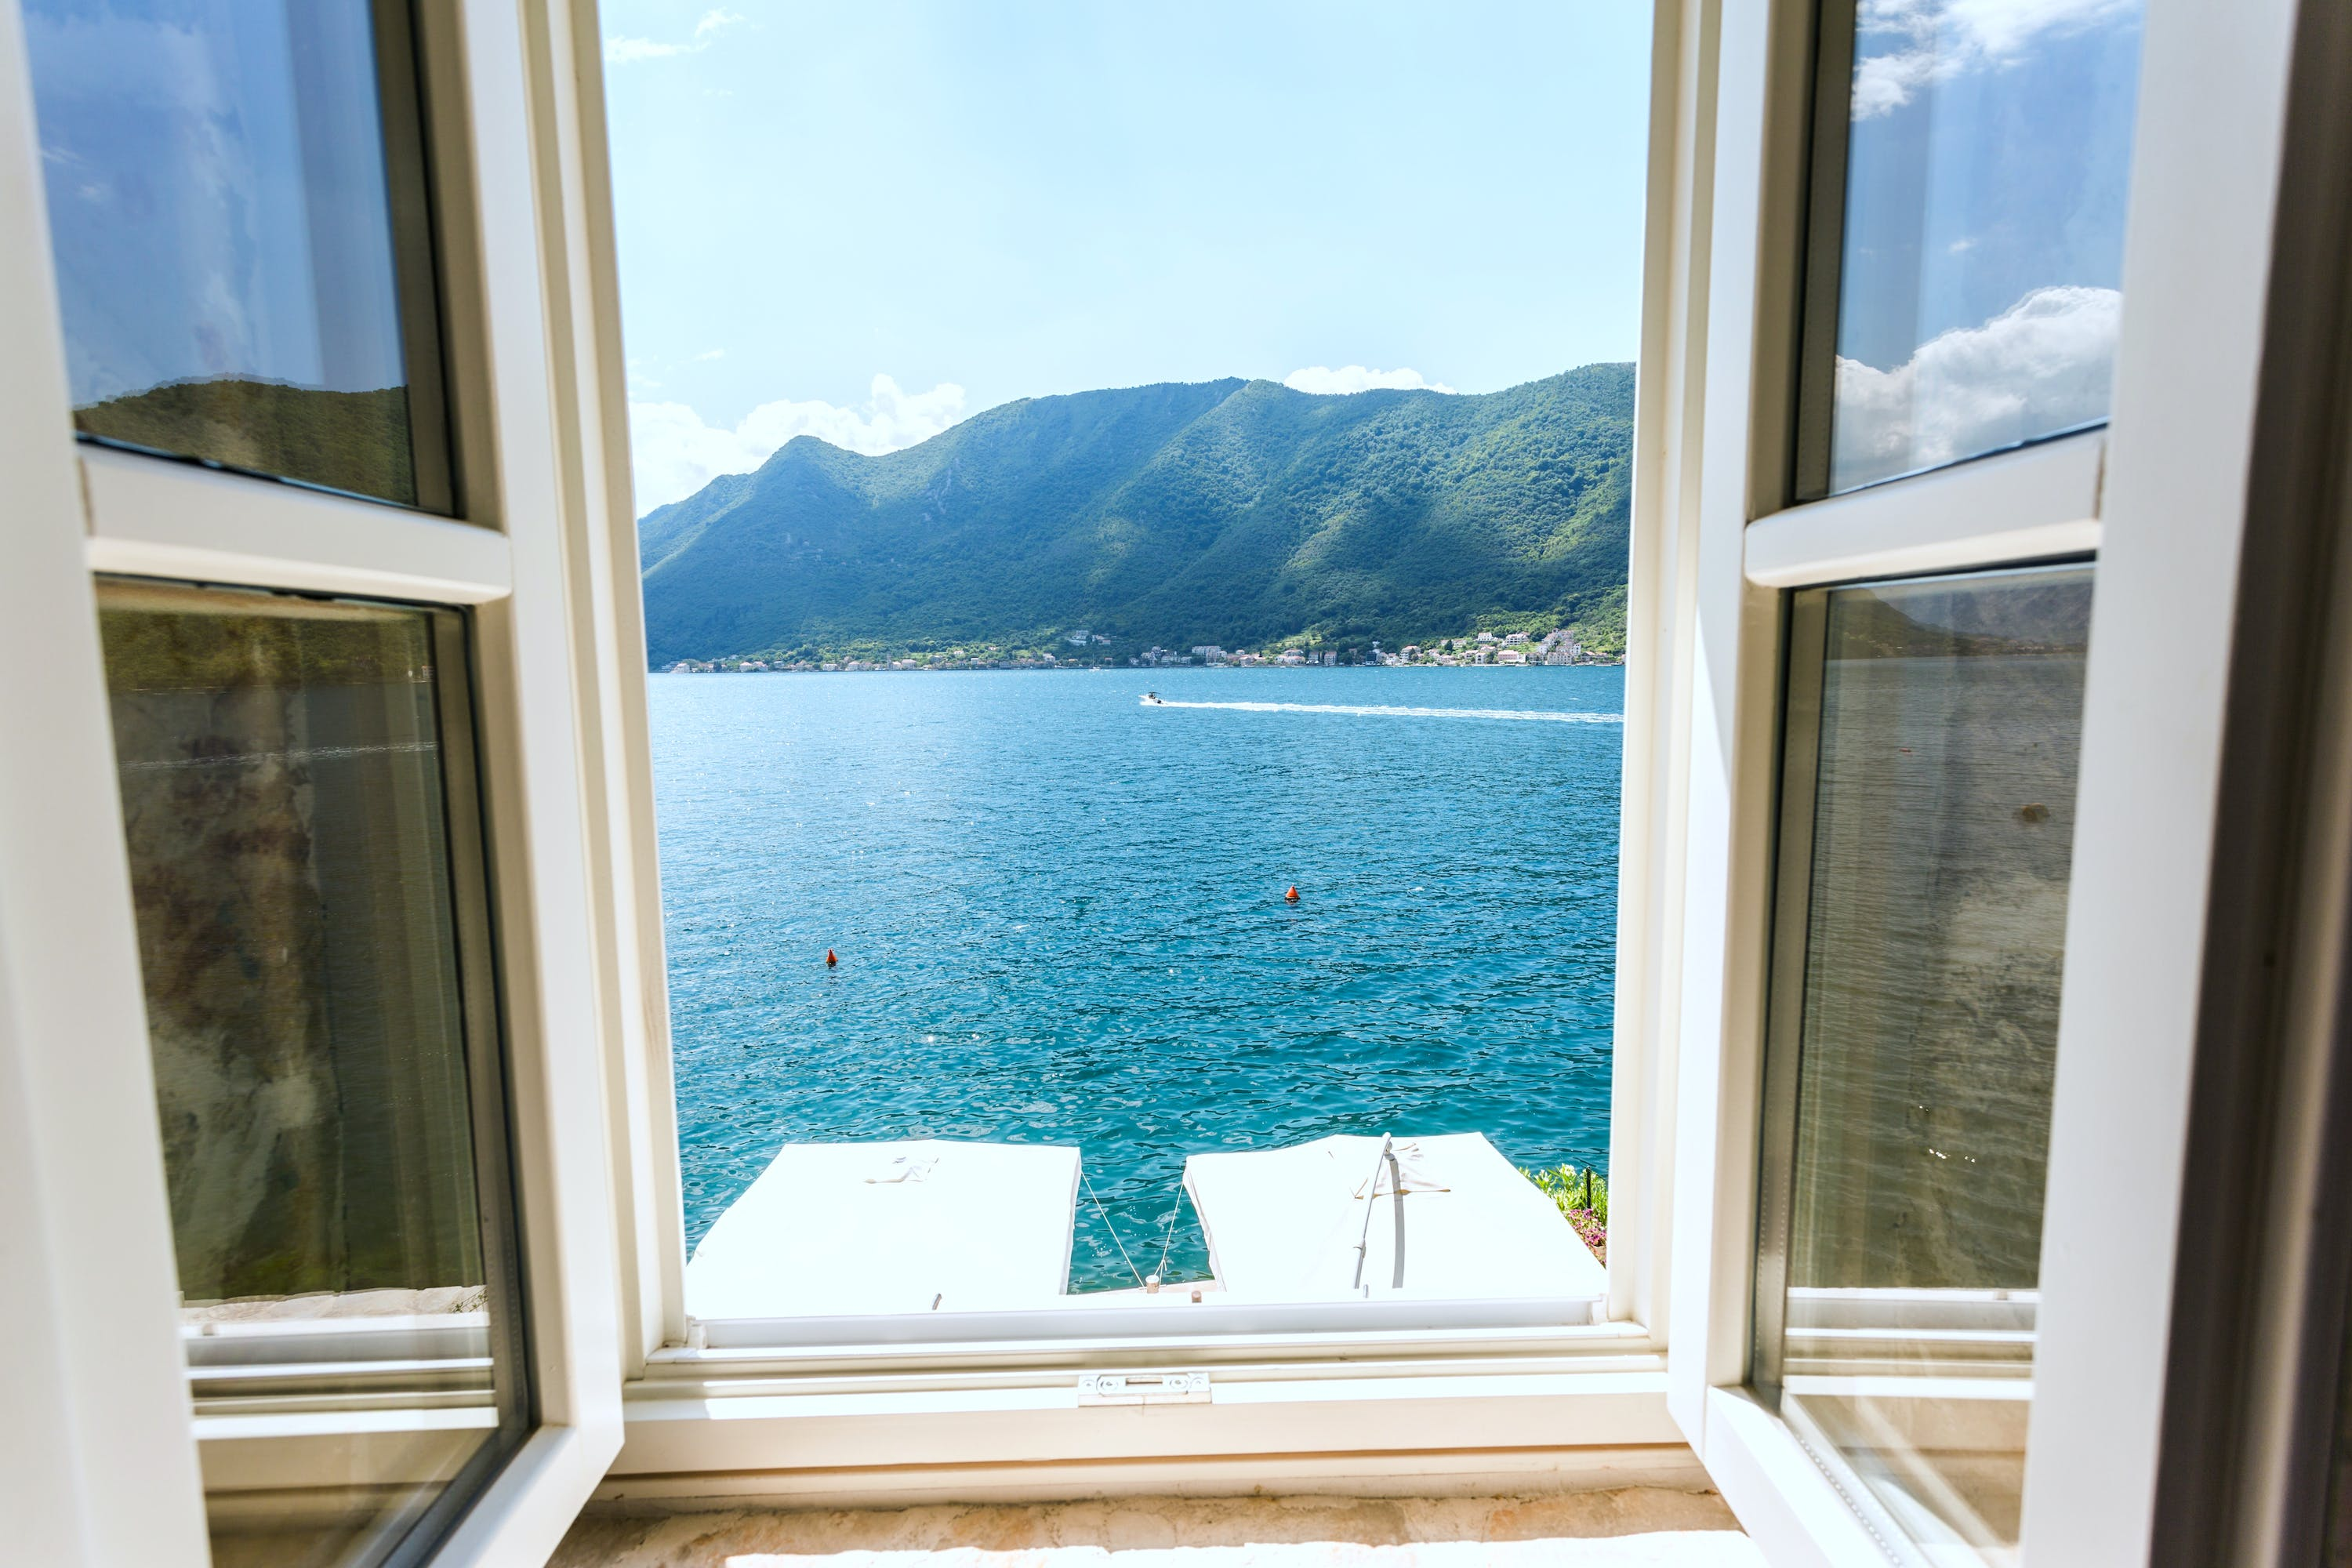 view through an open window of a beautiful lake